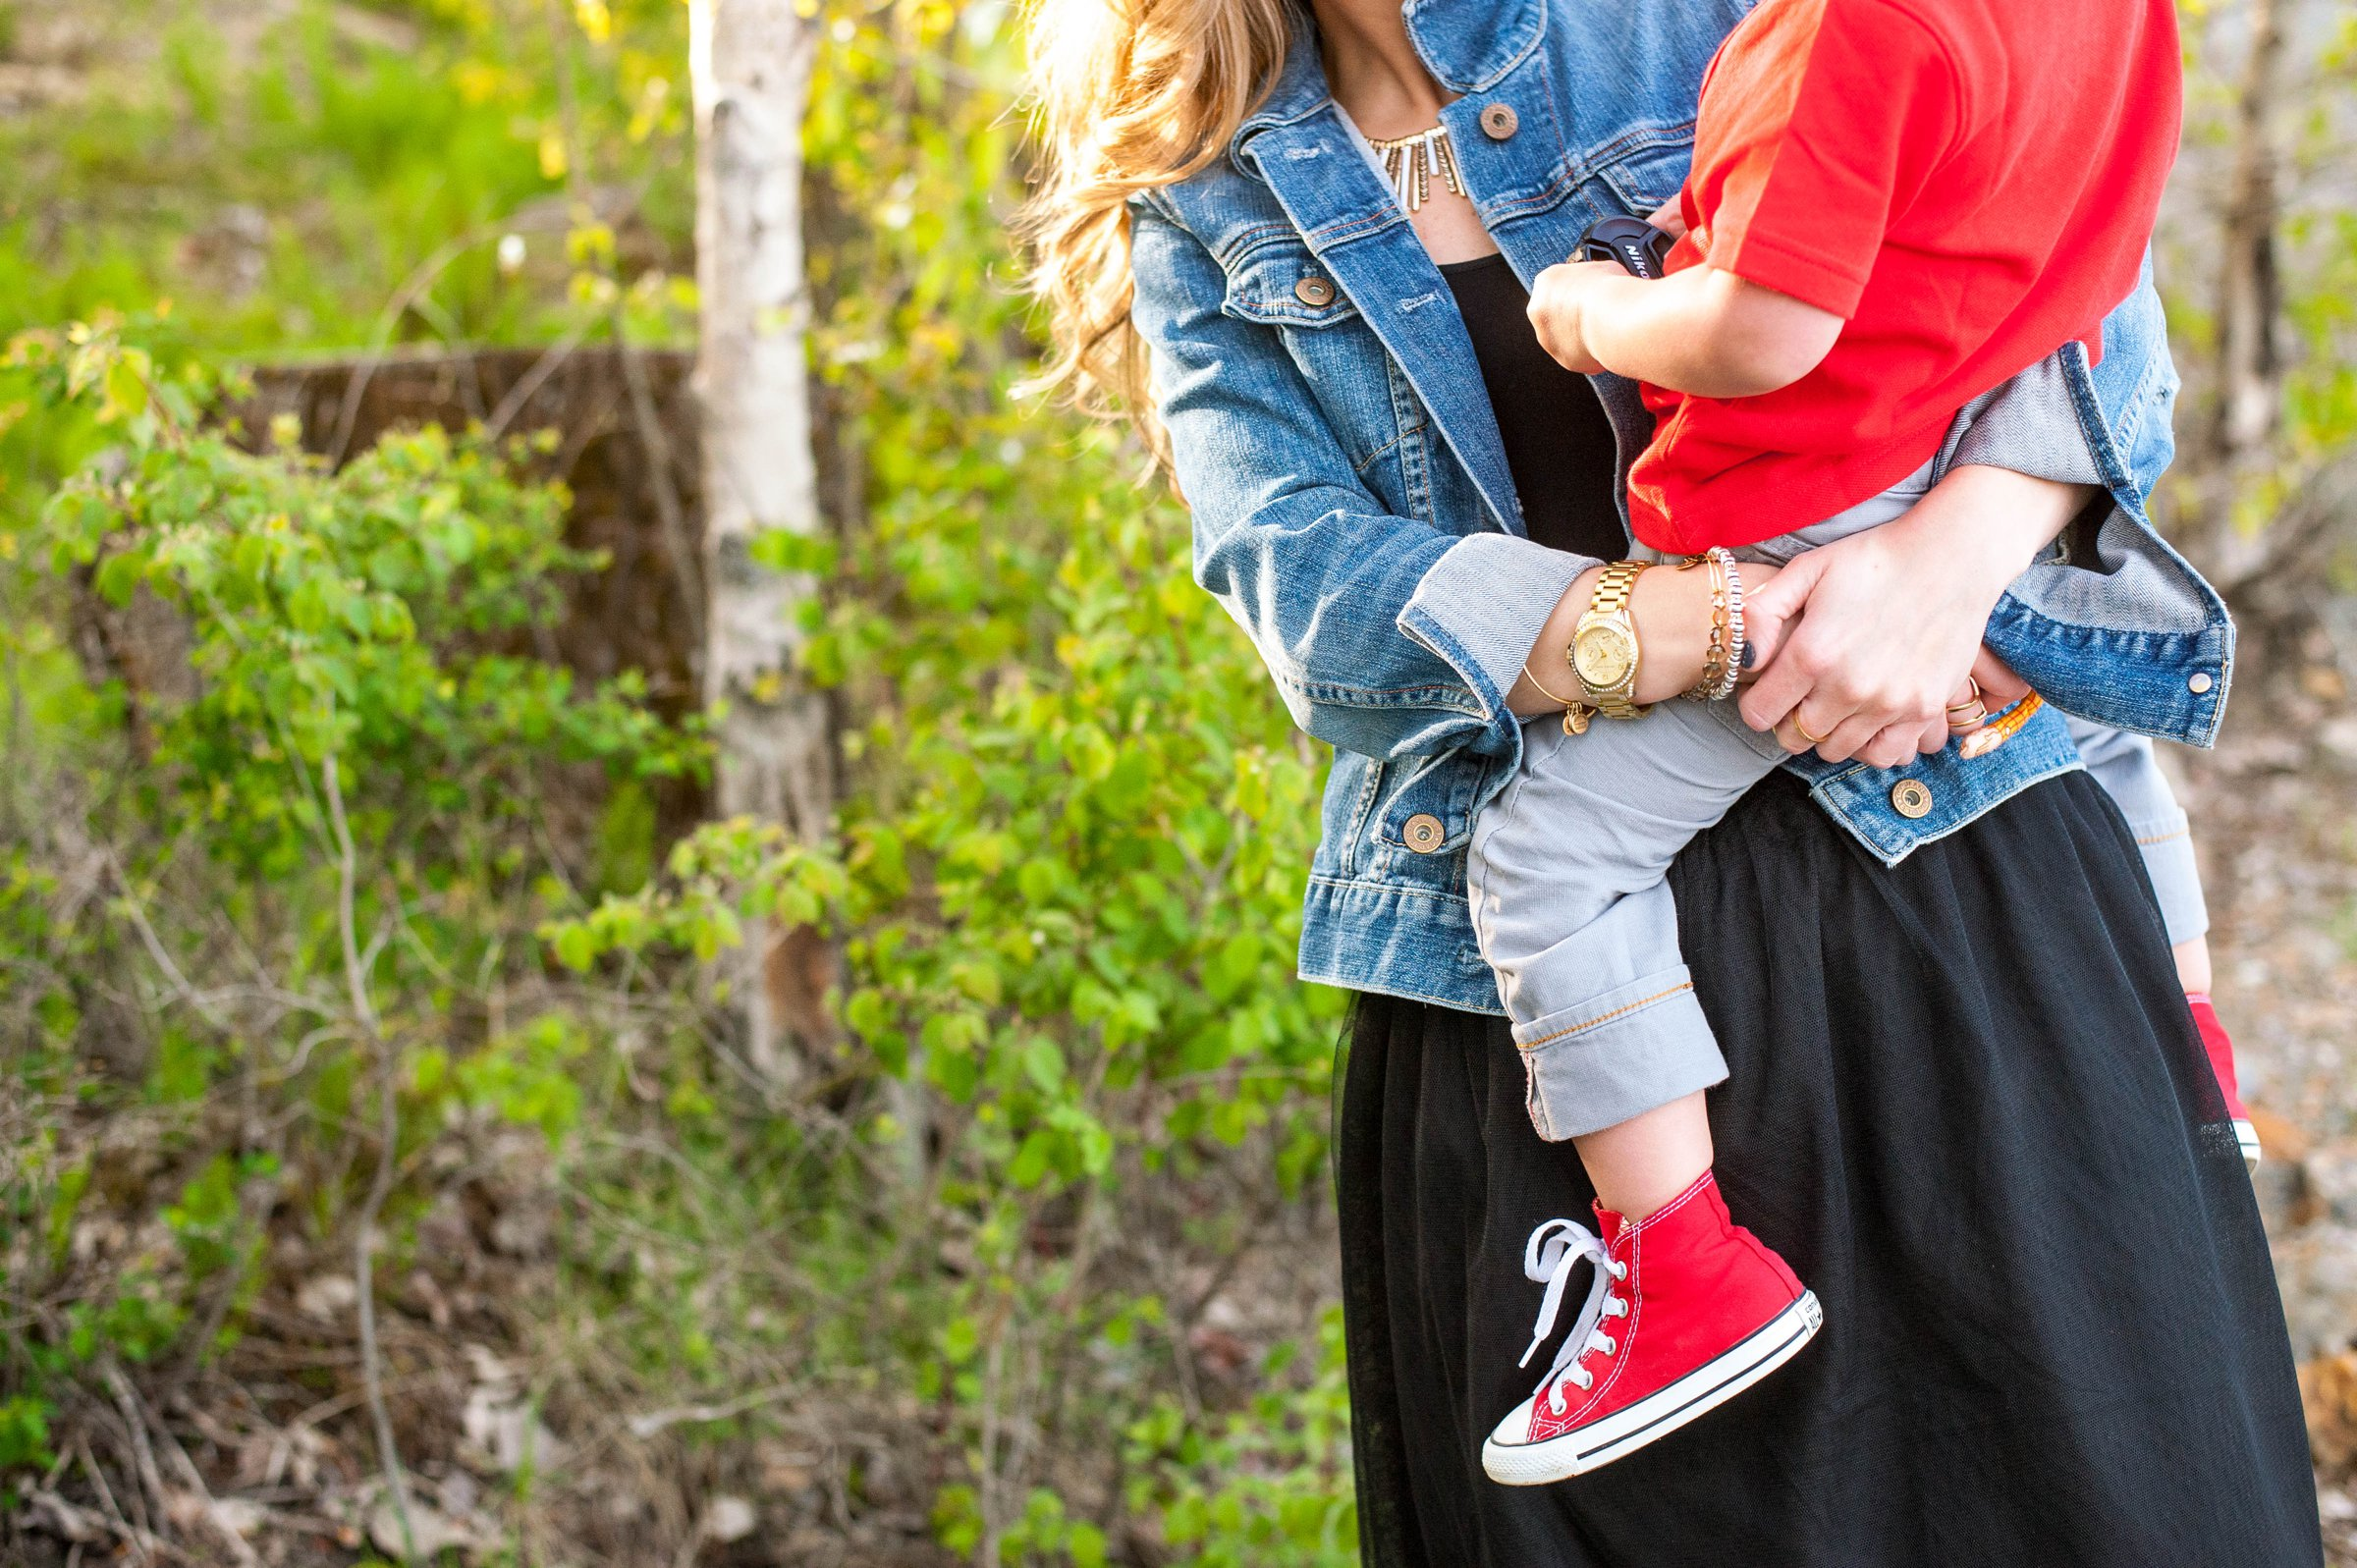 Janel-Gion-Photography-and-Design-Mommy-and-Me-Summer-Photo-Session-Sandpoint-Idaho_0003.jpg